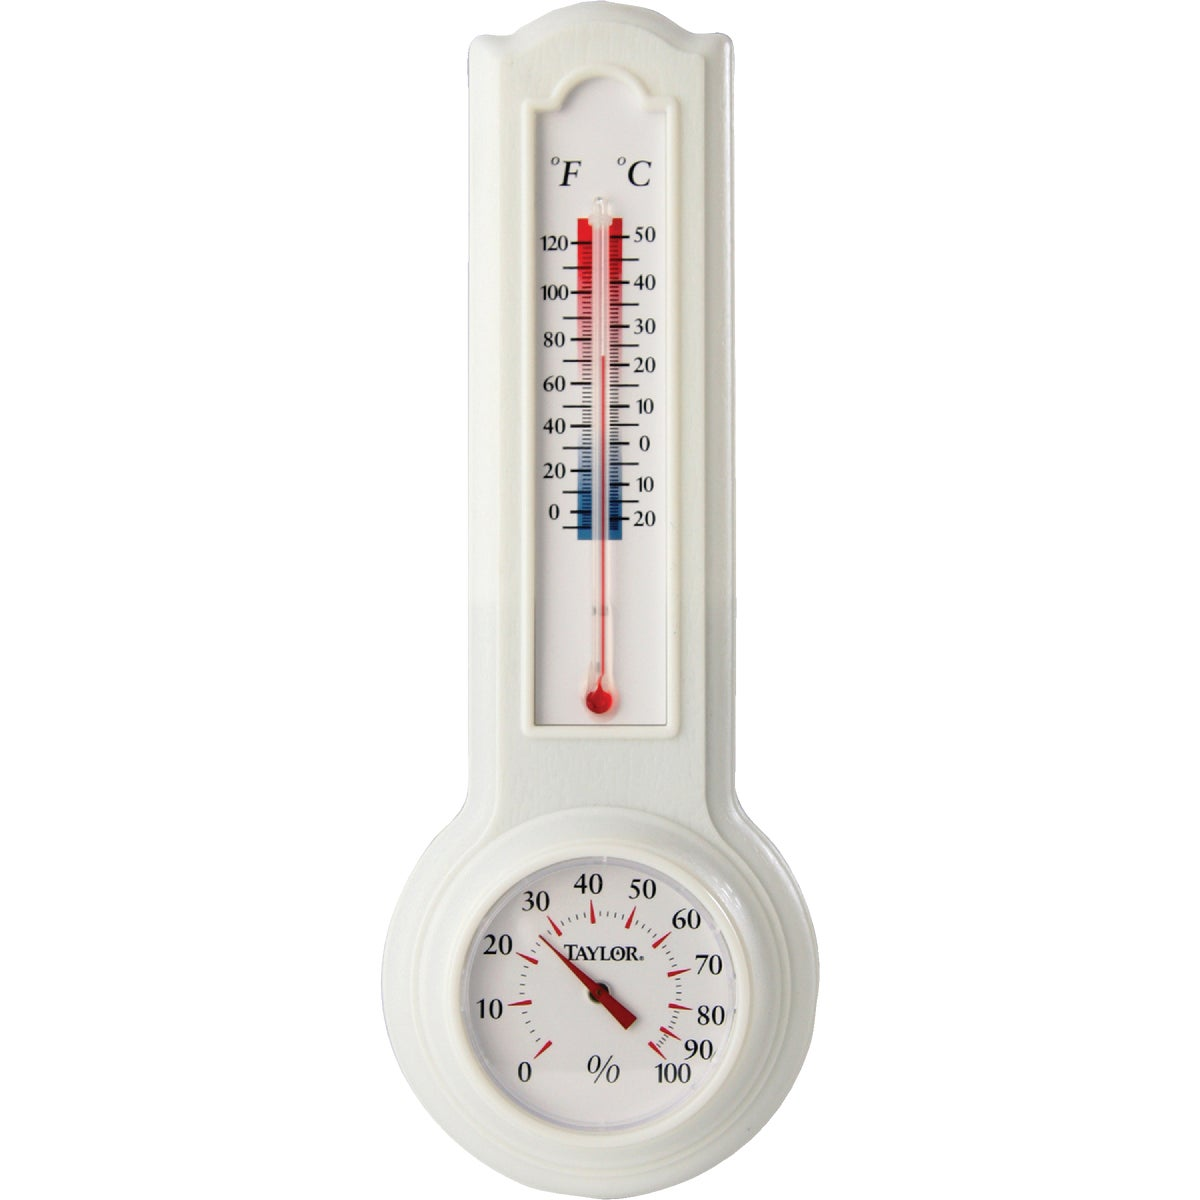 HUMIDIGUIDE/THERMOMETER - 5535E by Taylor Precision